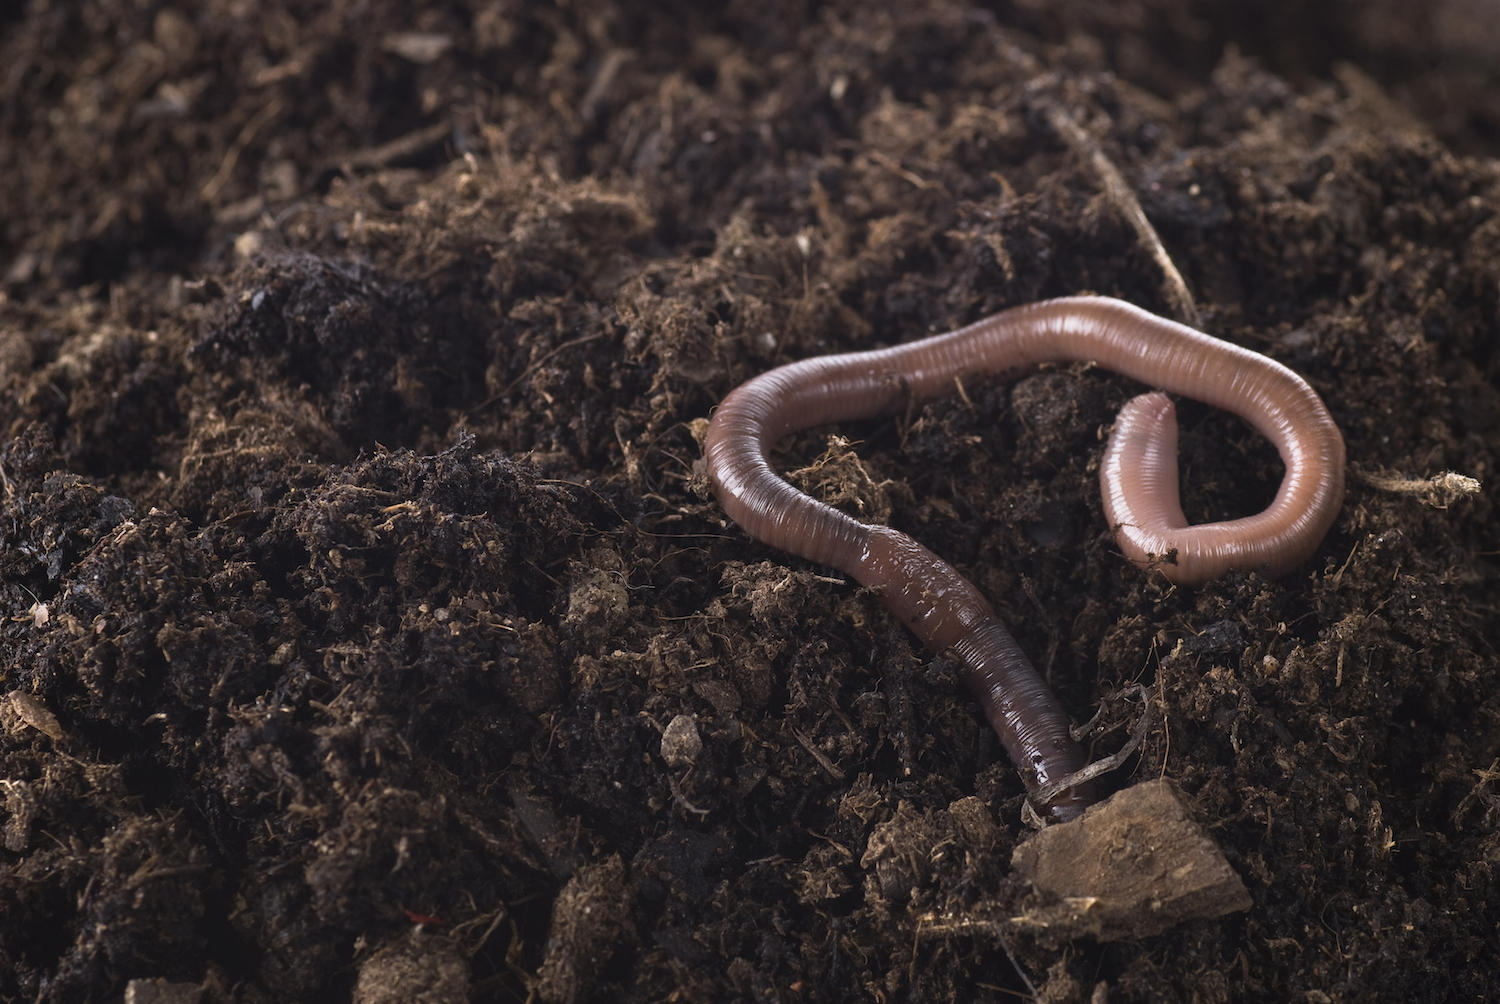 the common earthworm does help soil by creating air and water pathways and decomposing organic matter